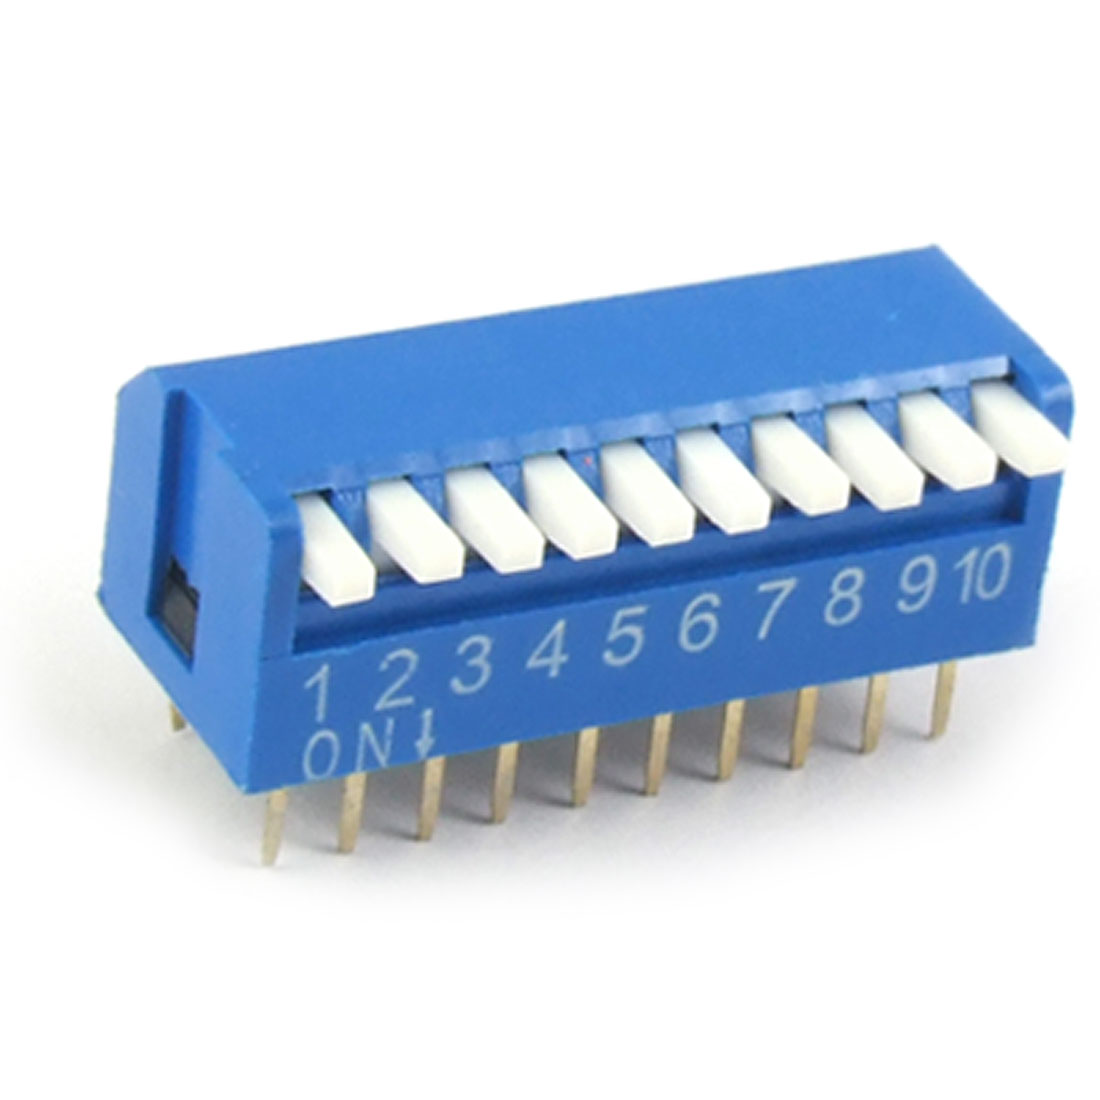 2.54mm Pitch 10 Position Piano Type DIP Switch Blue 10Pcs